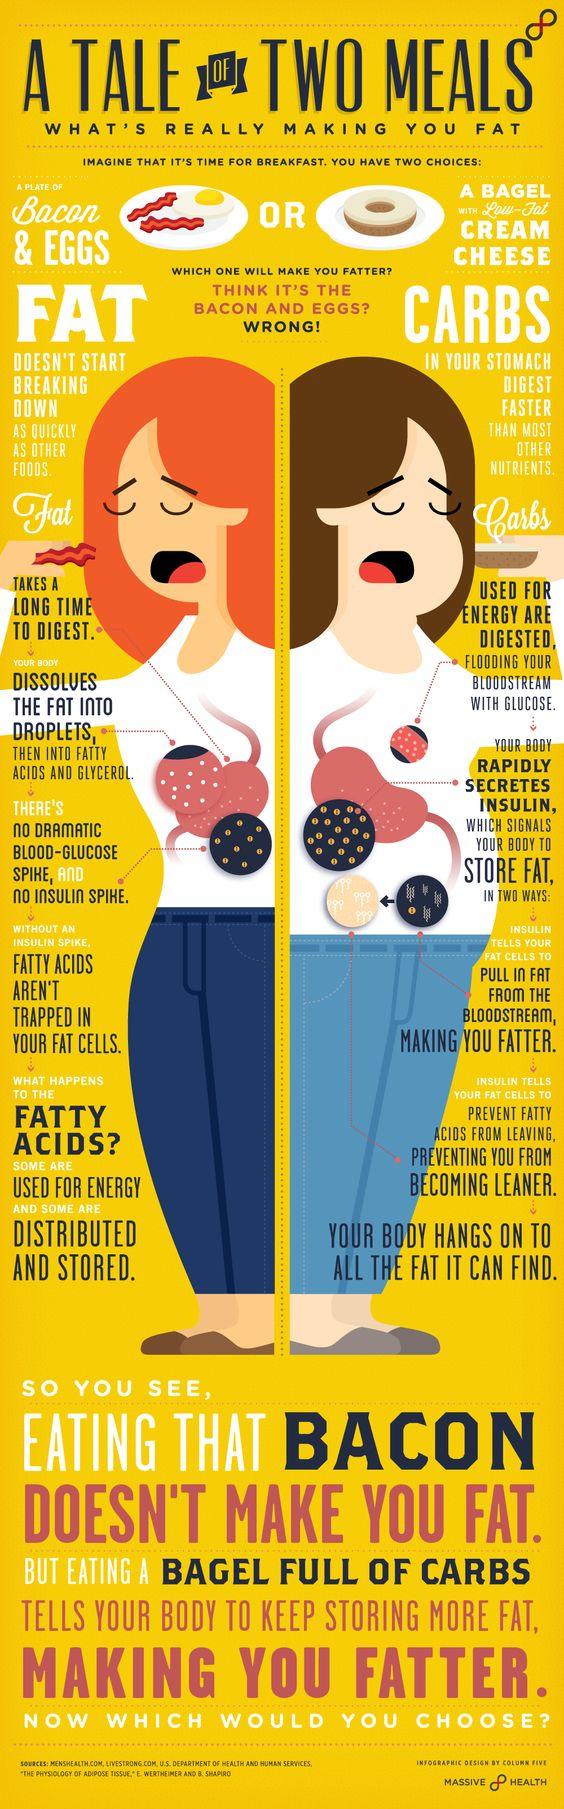 What really makes you fat?